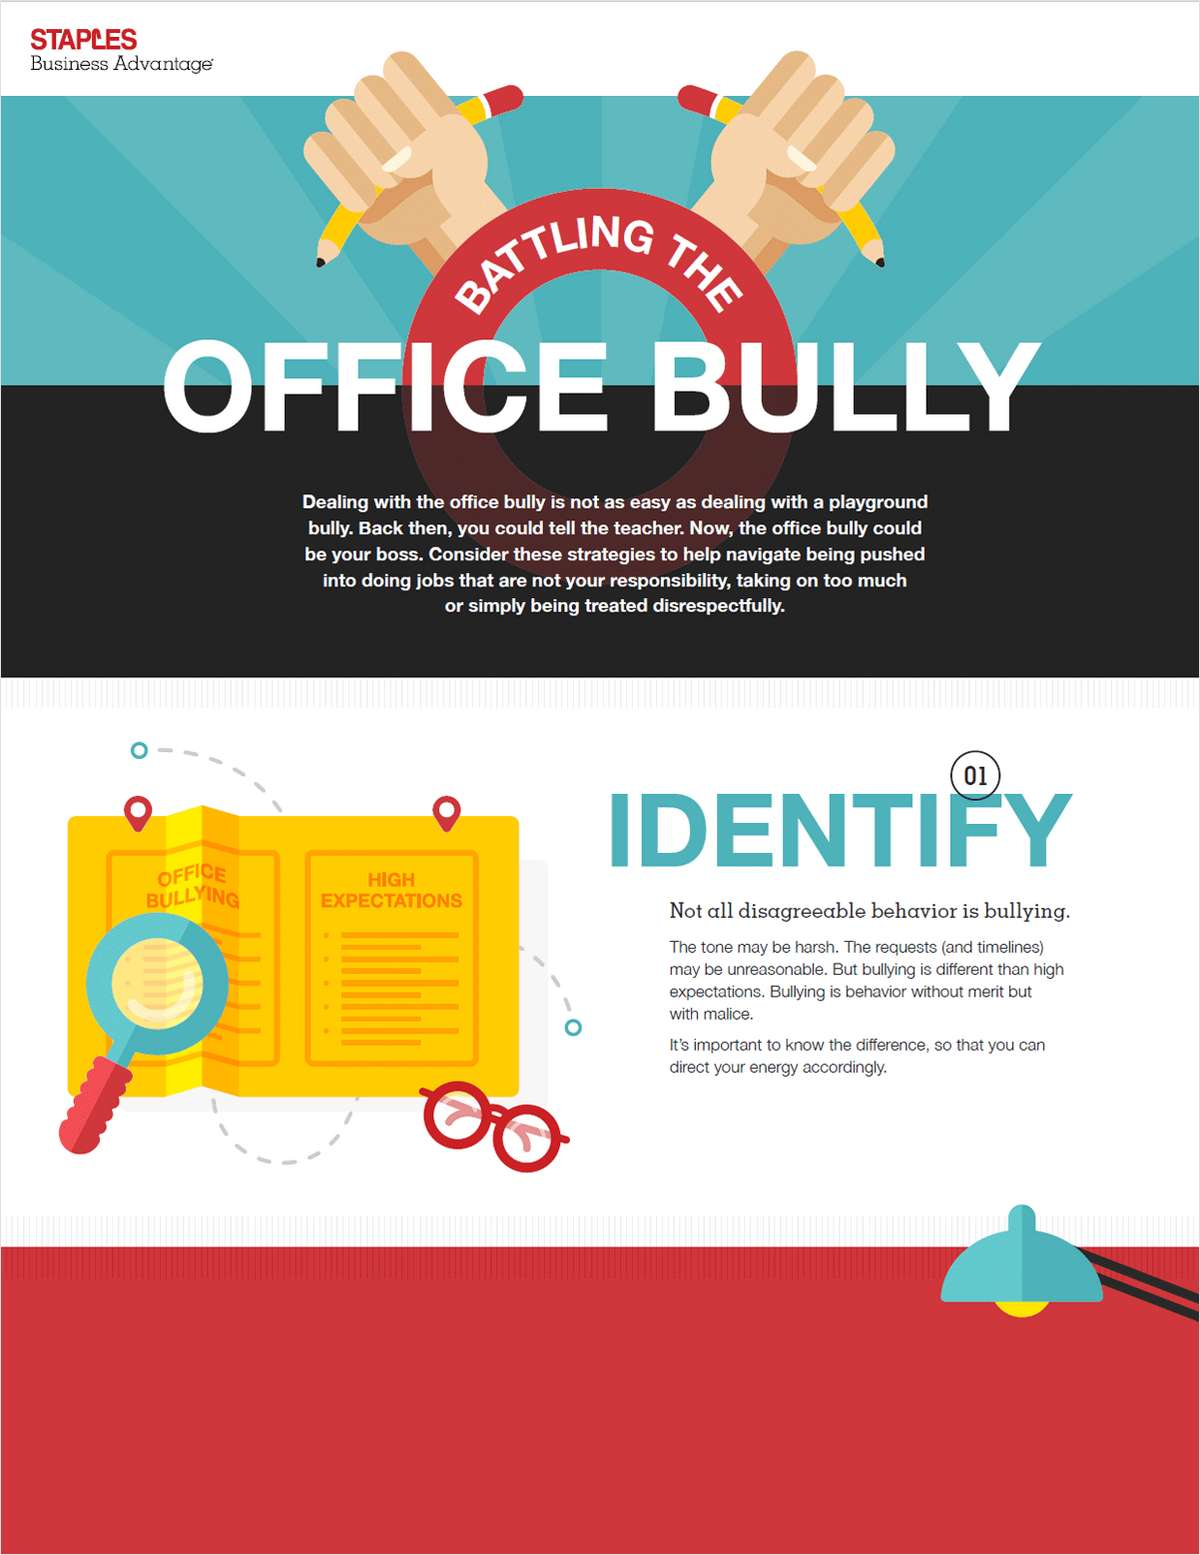 Battling the Office Bully